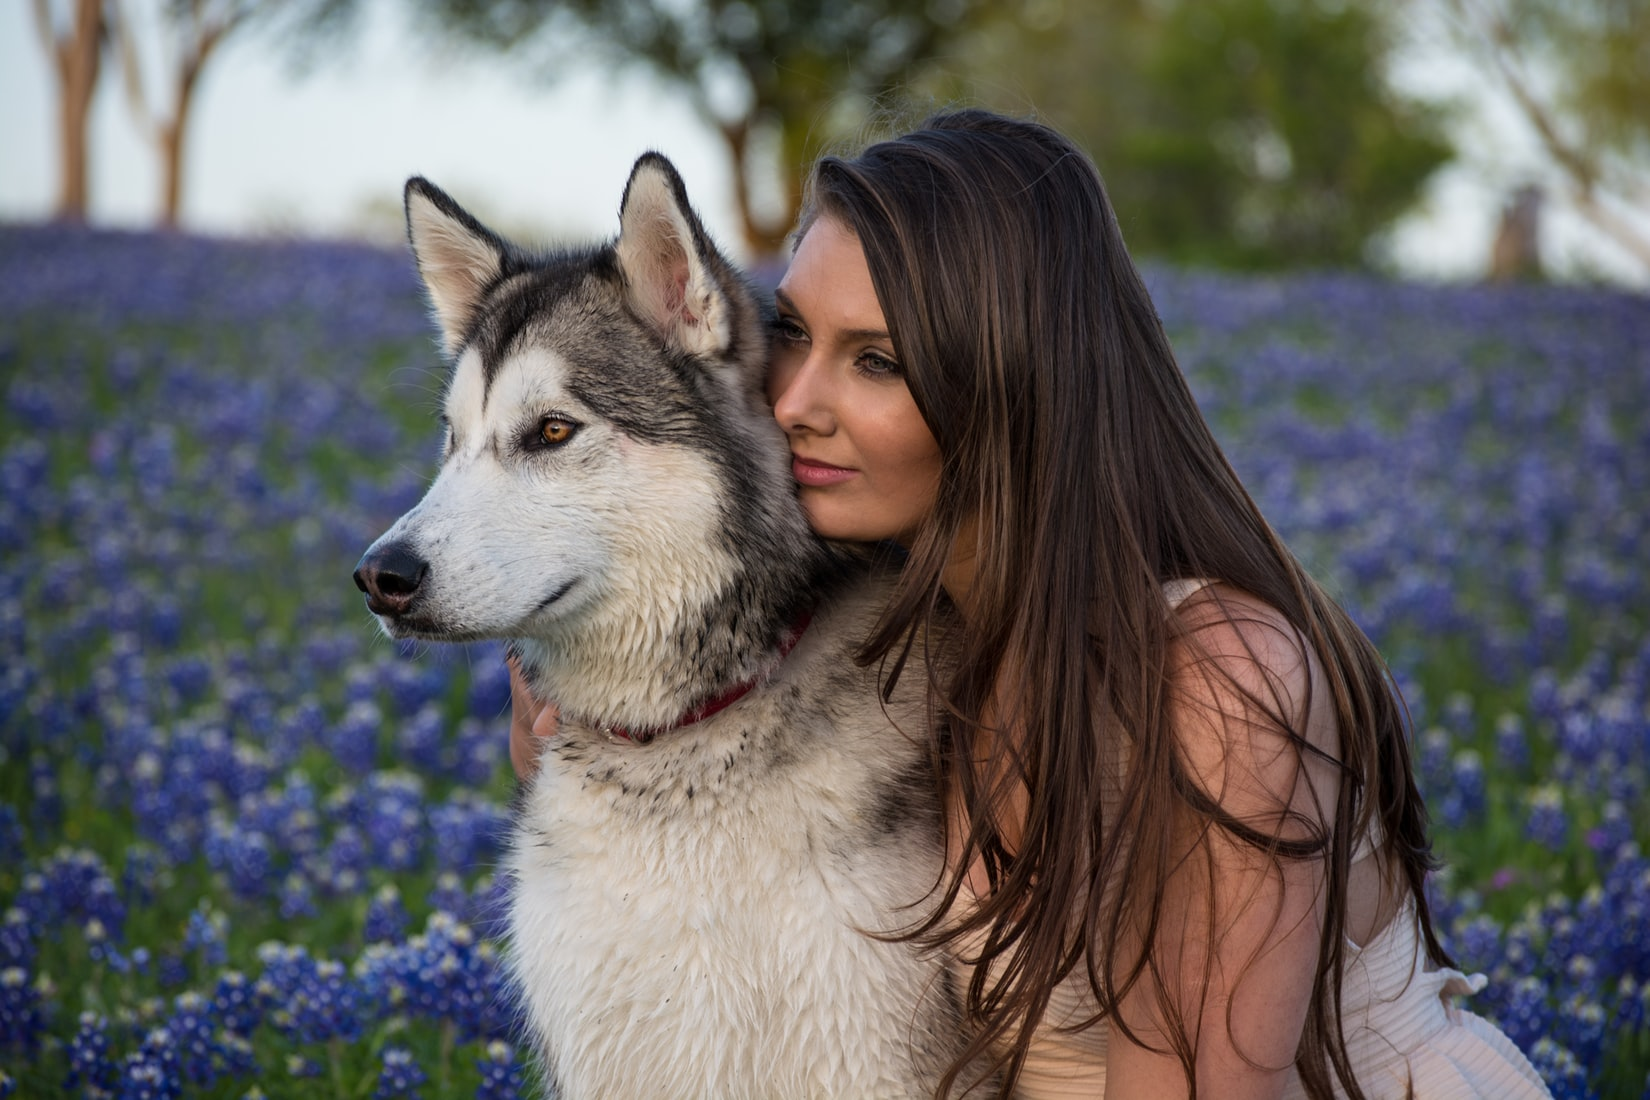 Young brunette woman hugging Siberian Husky near bed of purple flowers outdoors